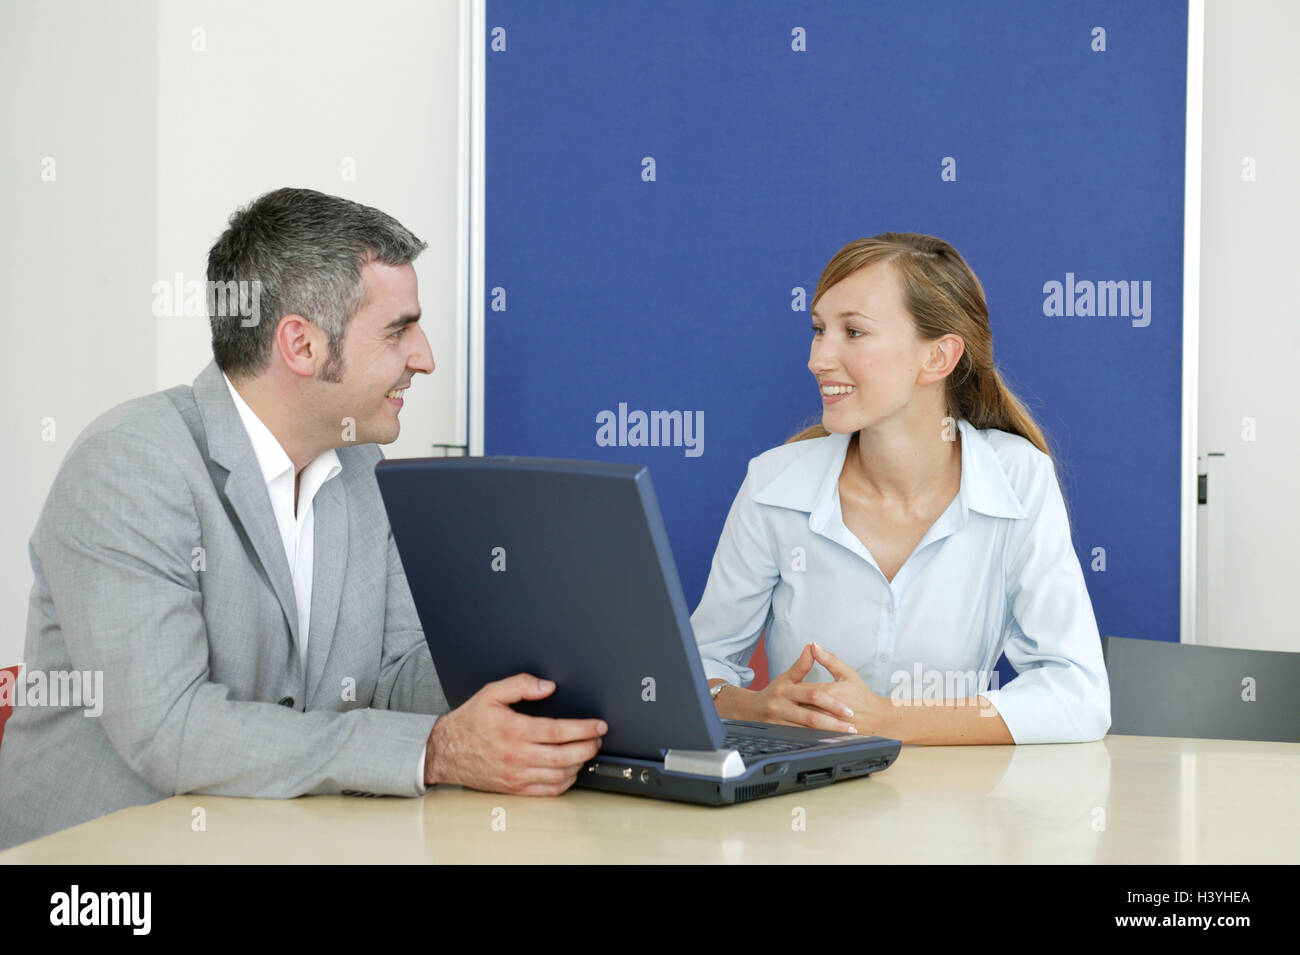 Businessman, notebook computer, woman, young, consultation, smile, present business, conference room, man, manager, - Stock Image